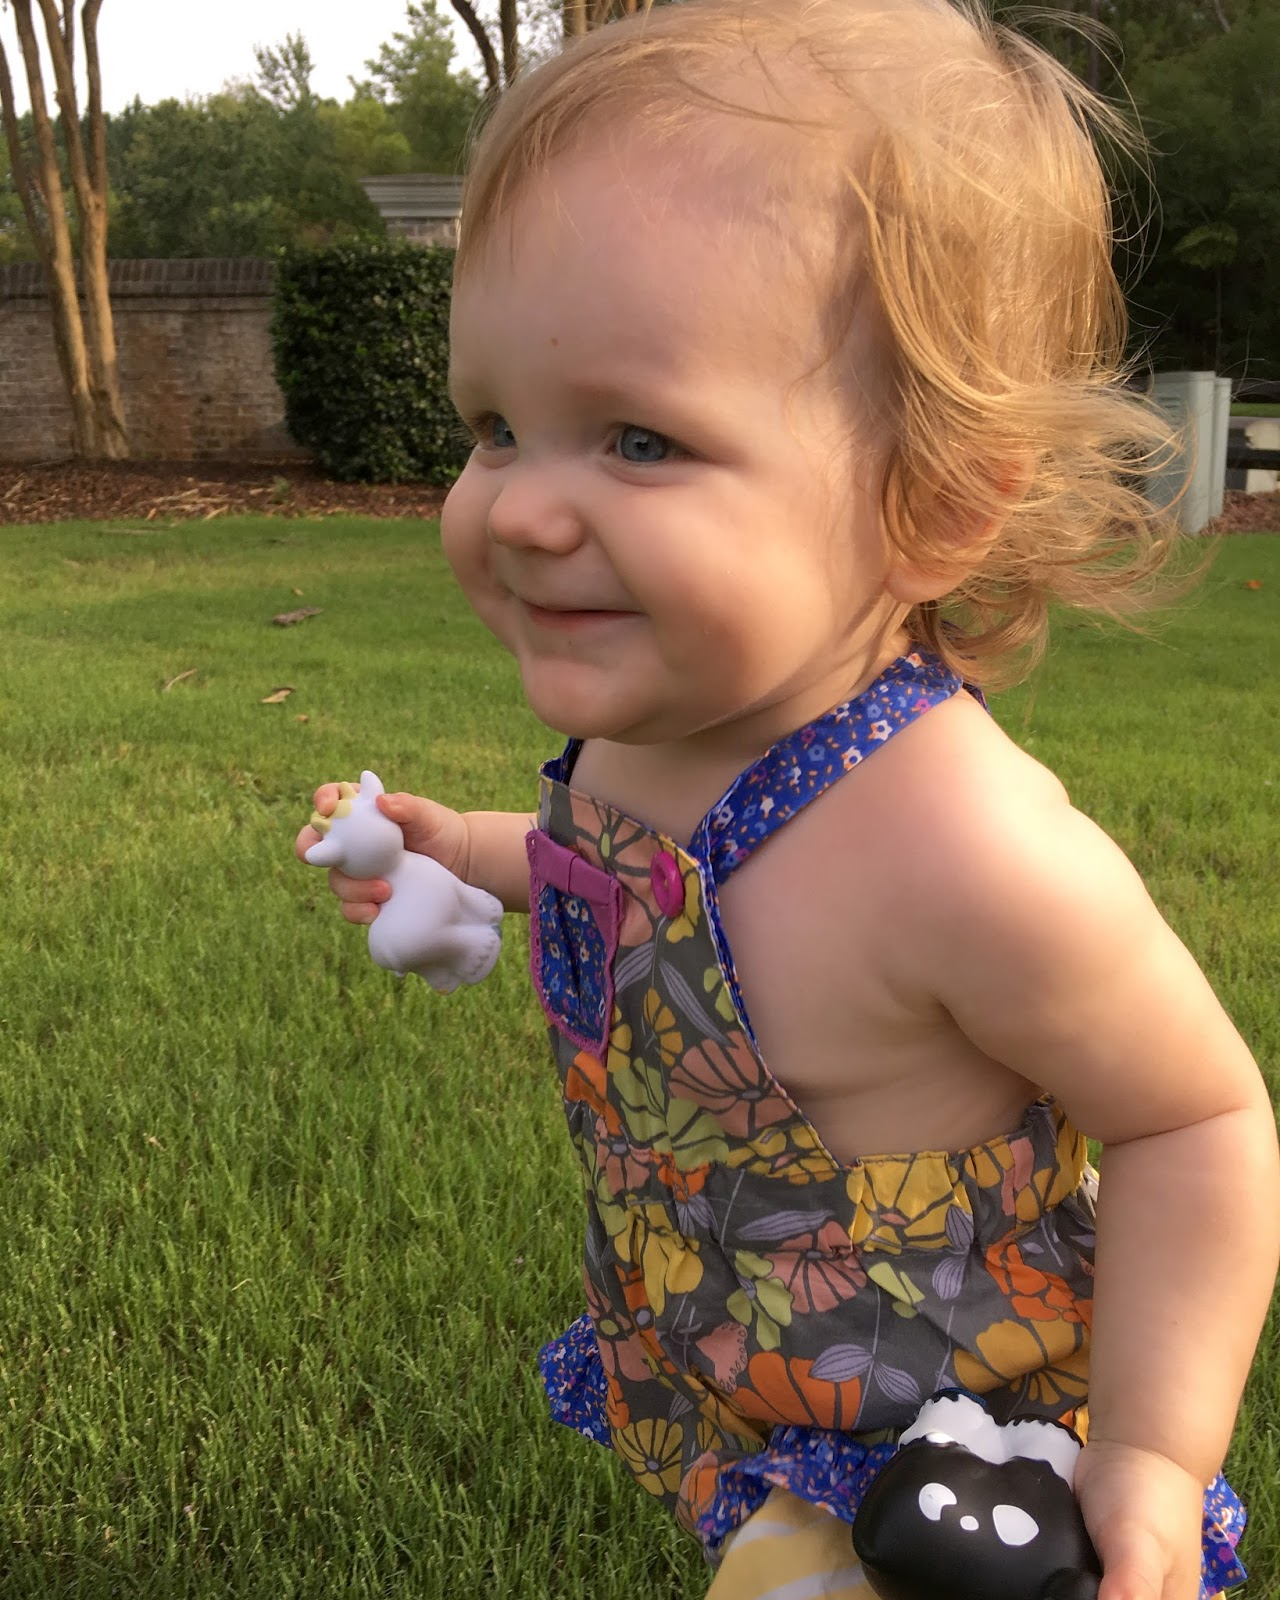 a3352a7b2c4 The first two items I got for Iris were dresses with coordinating diaper  covers. I picked a baby blue sundress to wear this summer and a deep red  dress with ...